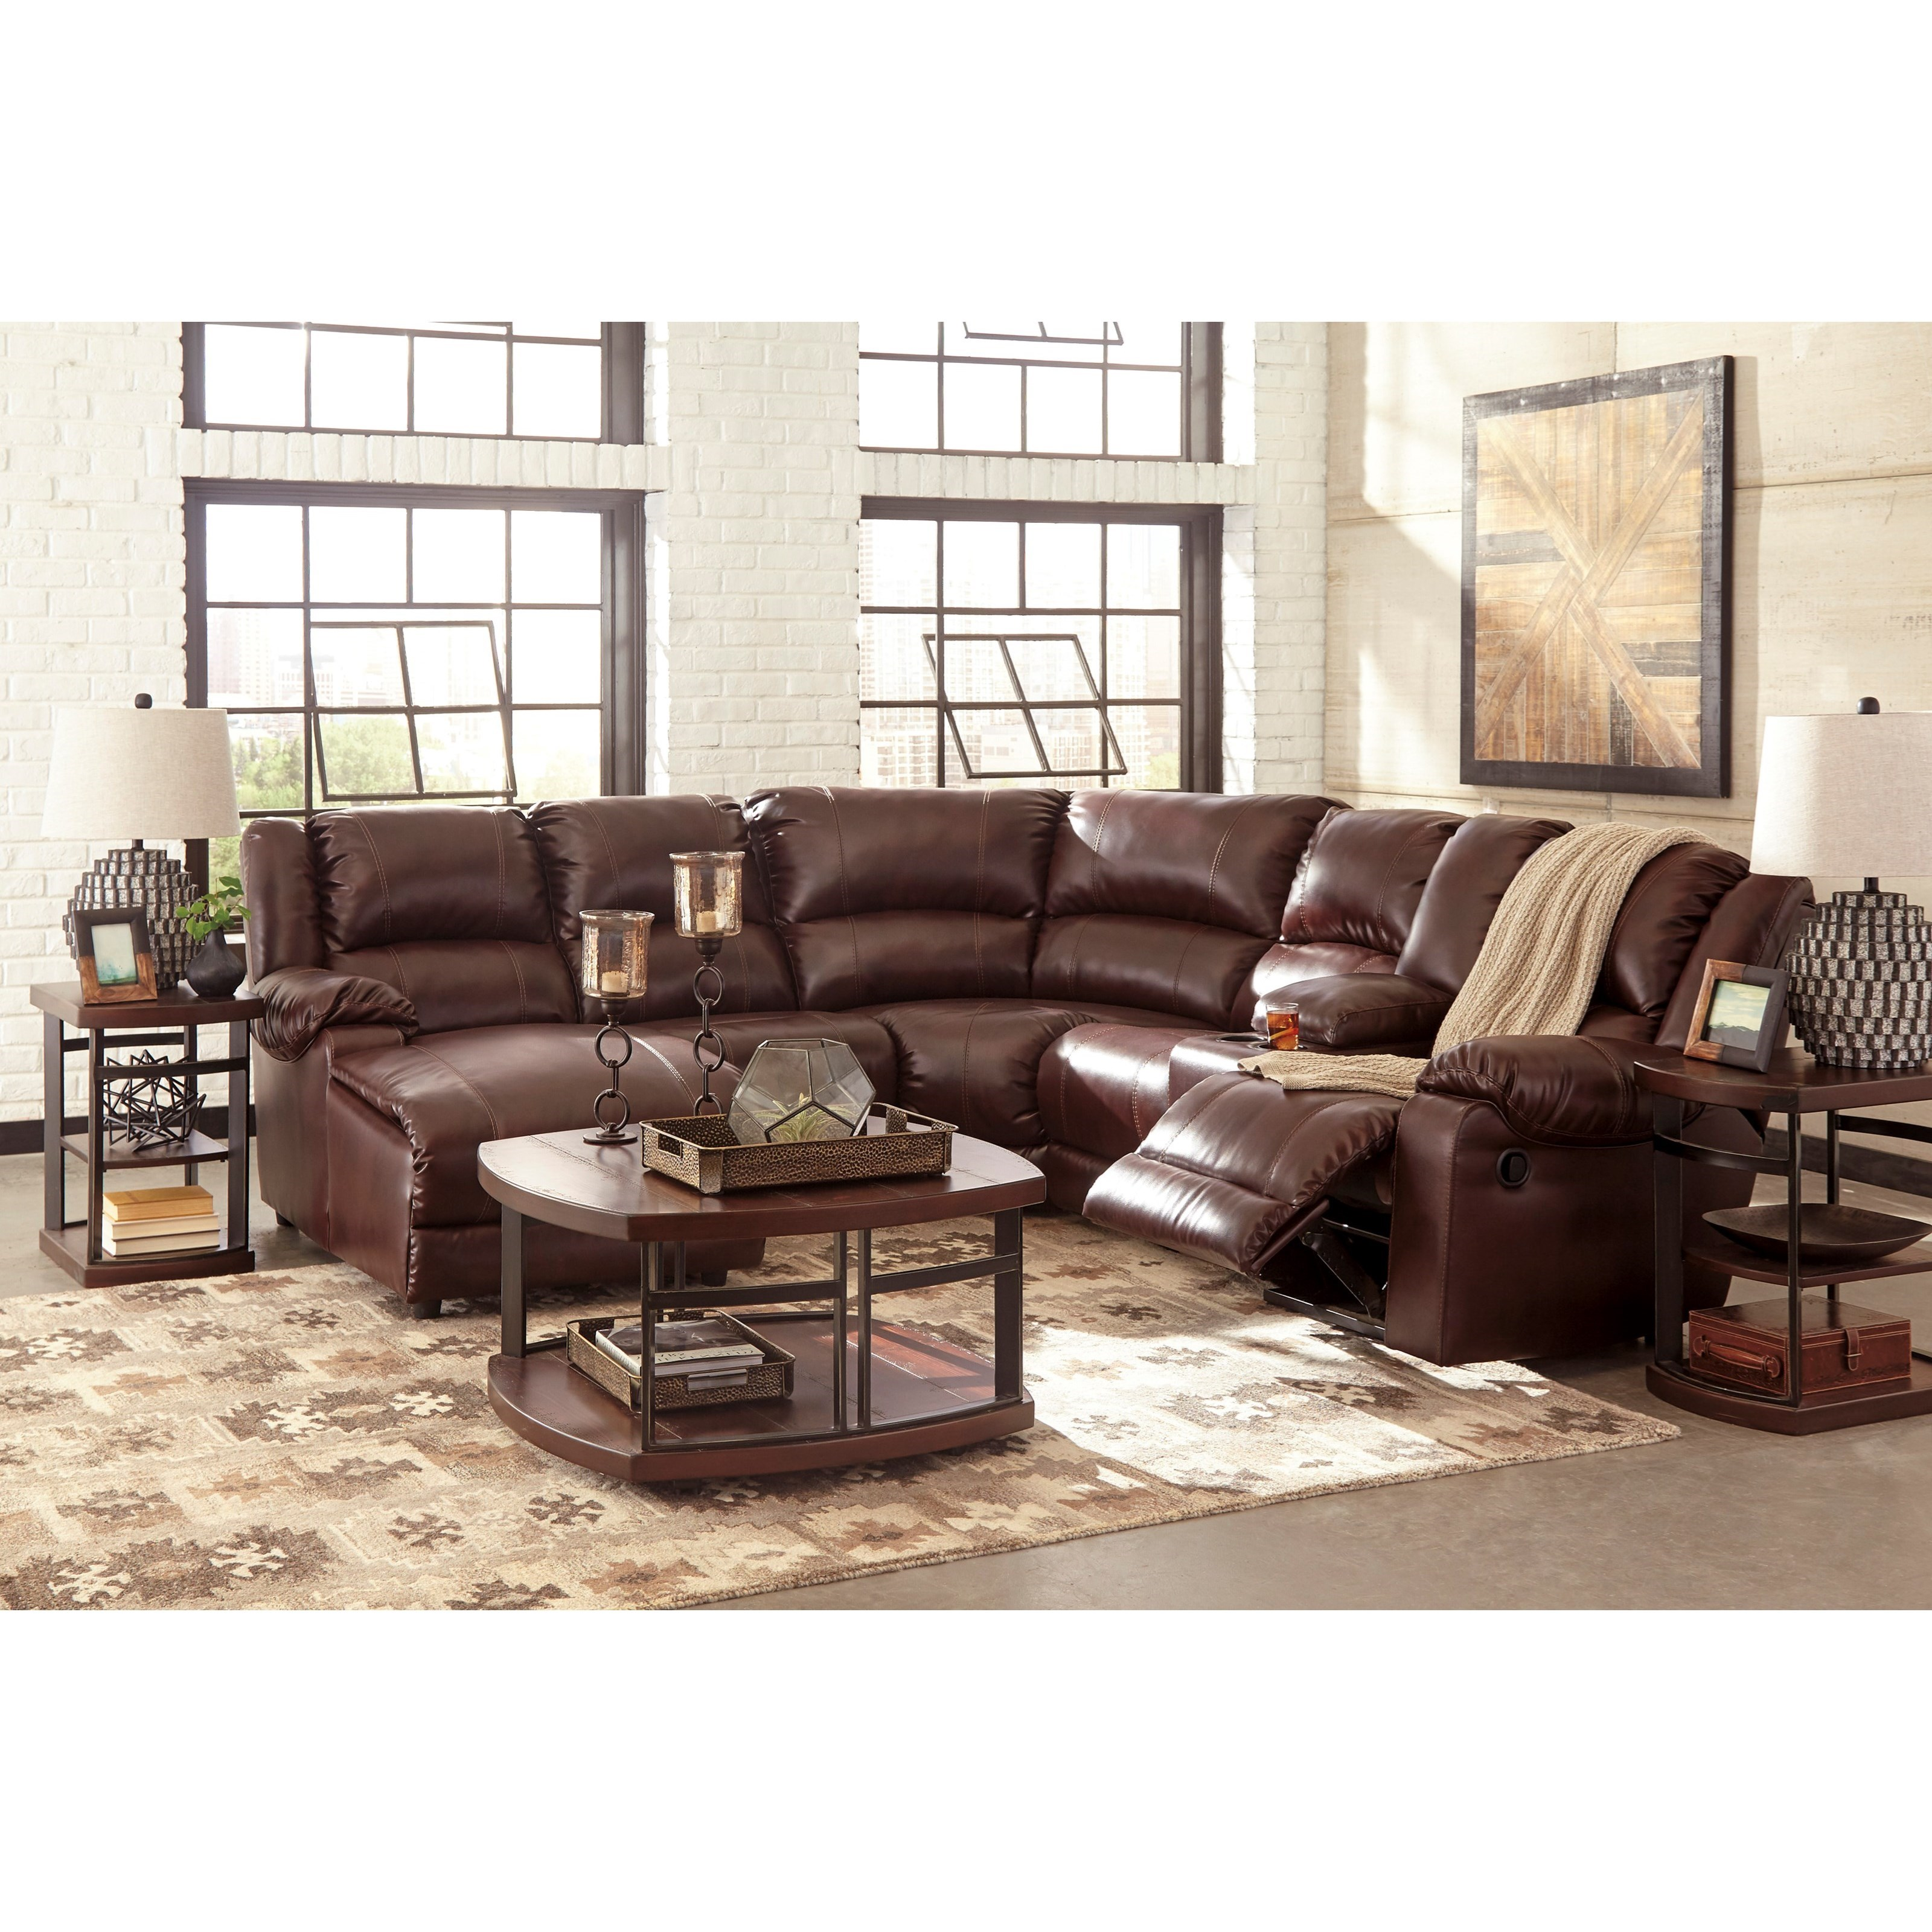 Reclining Sectional with Chaise by Signature Design by